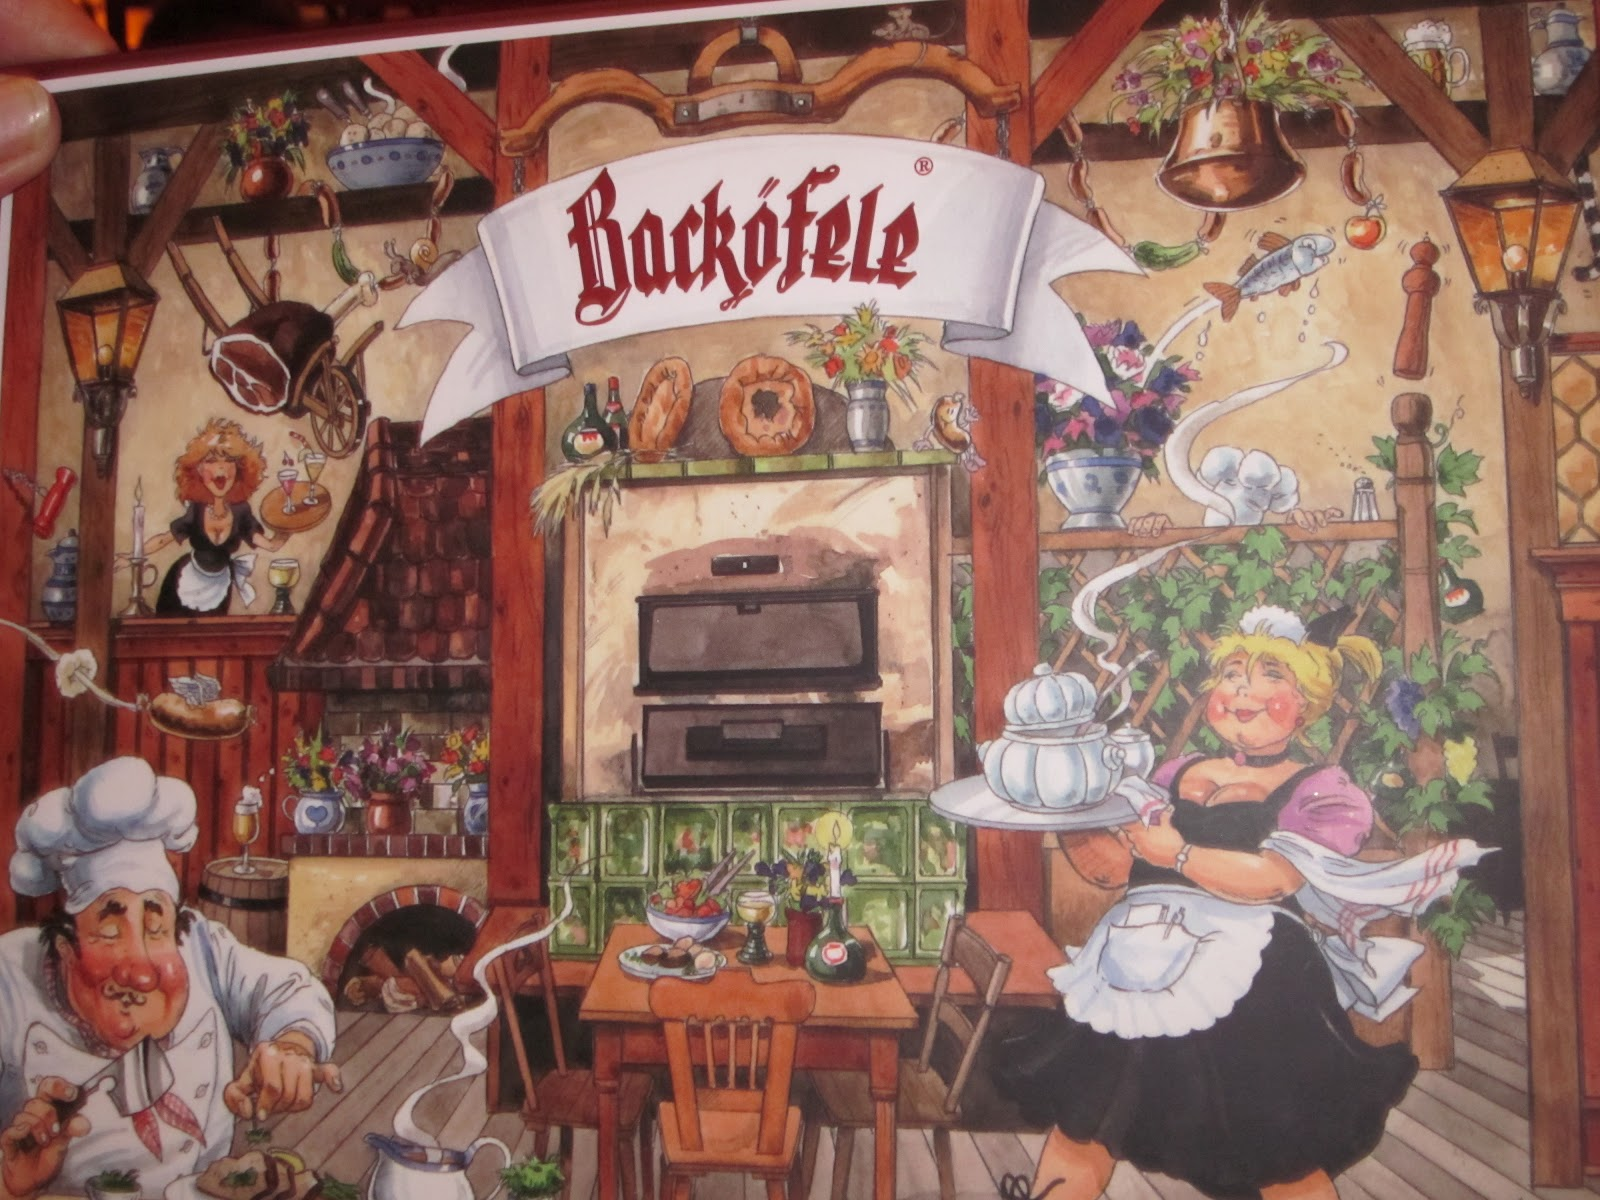 To Europe With Kids: Review of Backöfele Restaurant in ...